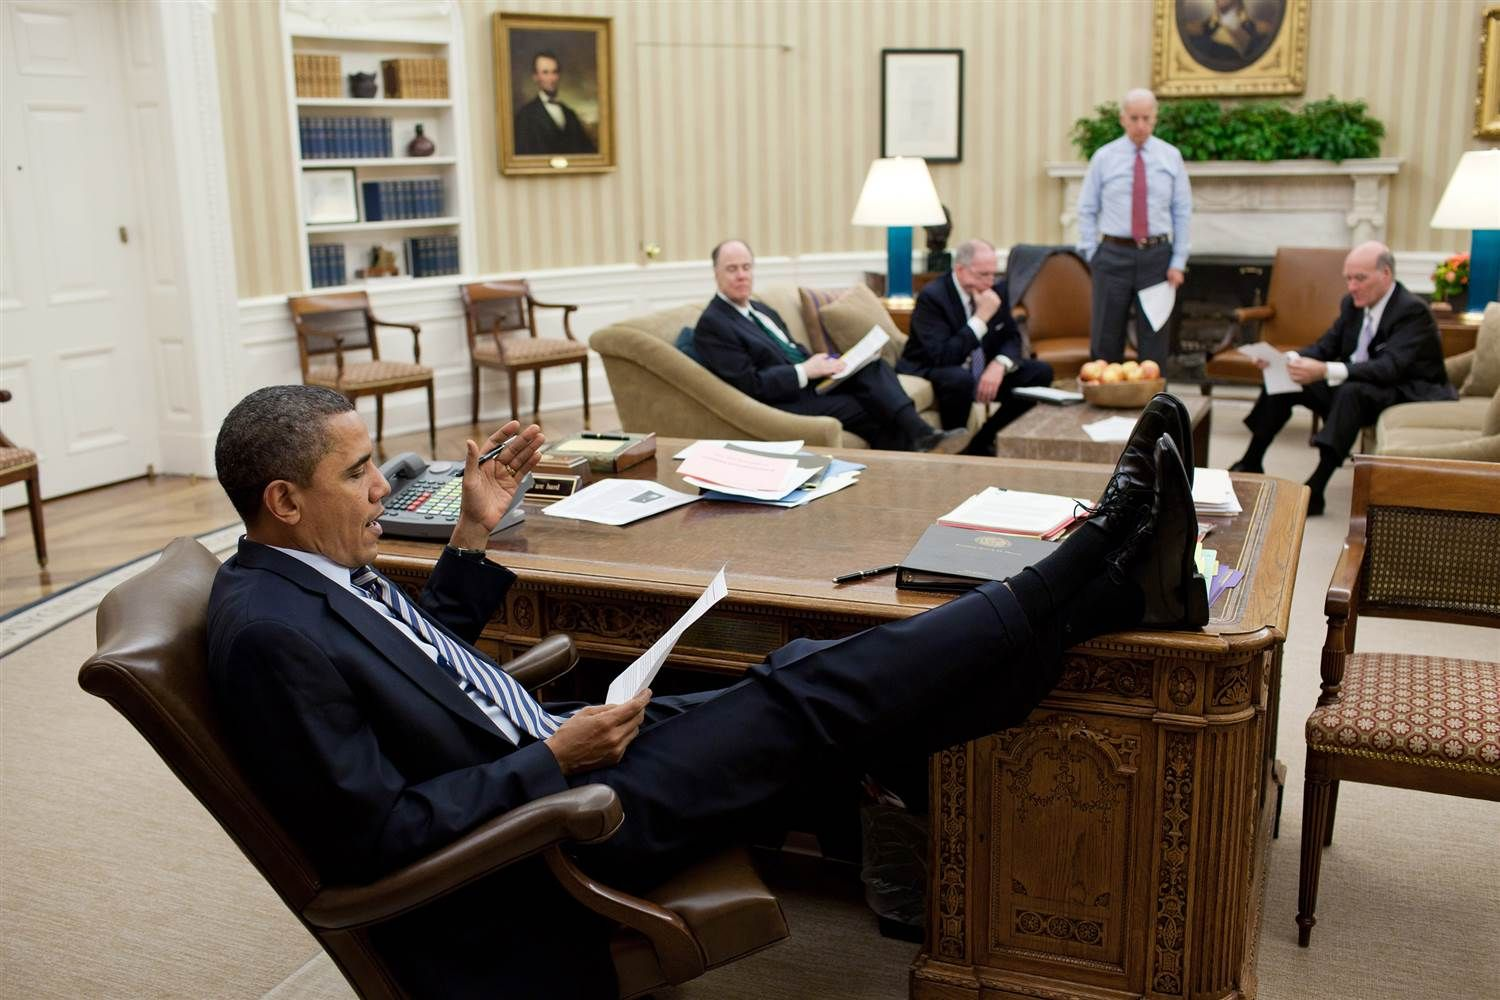 obamas oval office. Image: Obama Holds A Meeting In The Oval Office February 2011 Obamas N